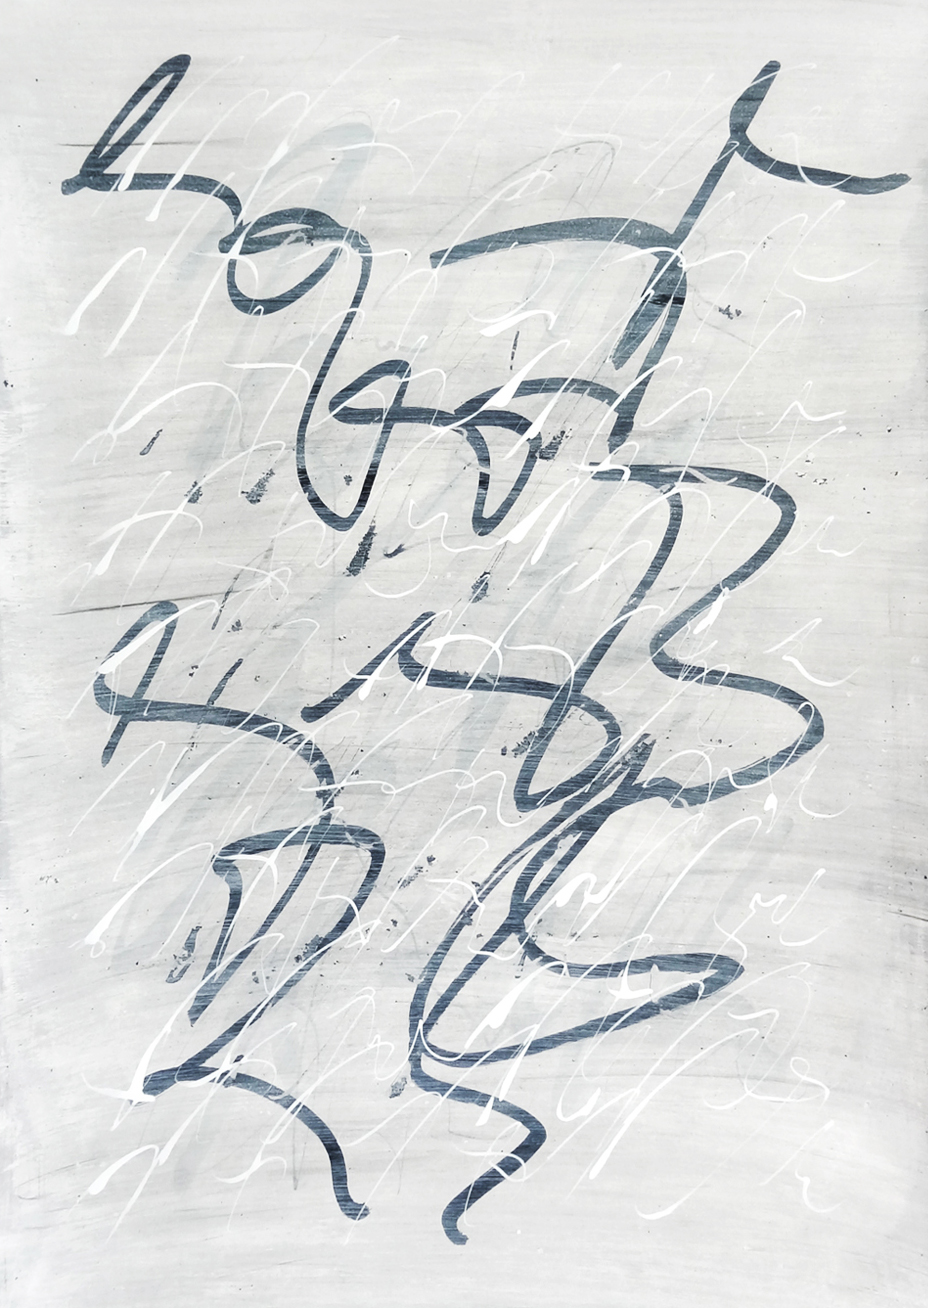 Untitled, 2019 calligraphy ink on paper 42,0 x 29,7 cm (31-19)